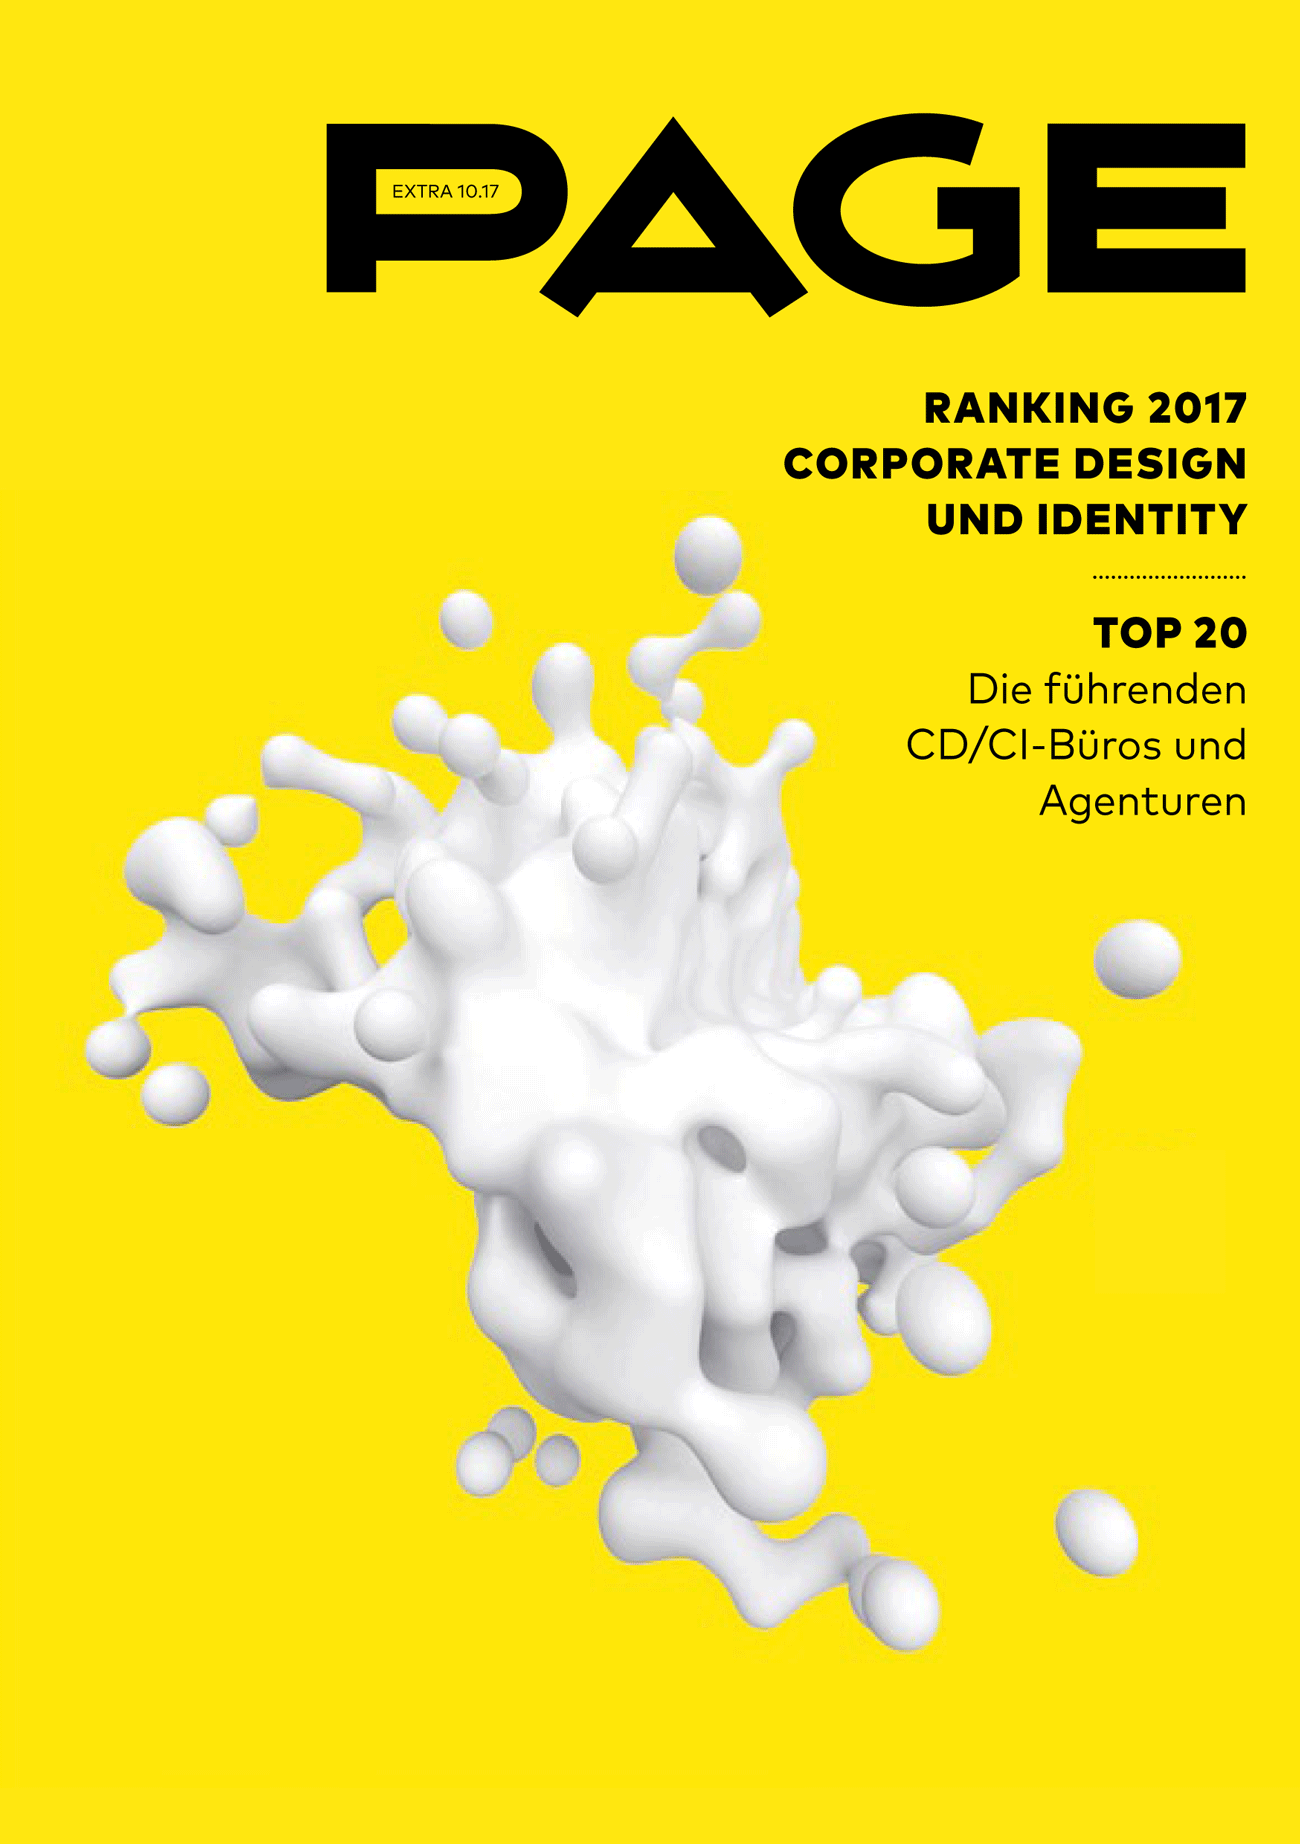 Produkt: PAGE CD/CI-Ranking 2017